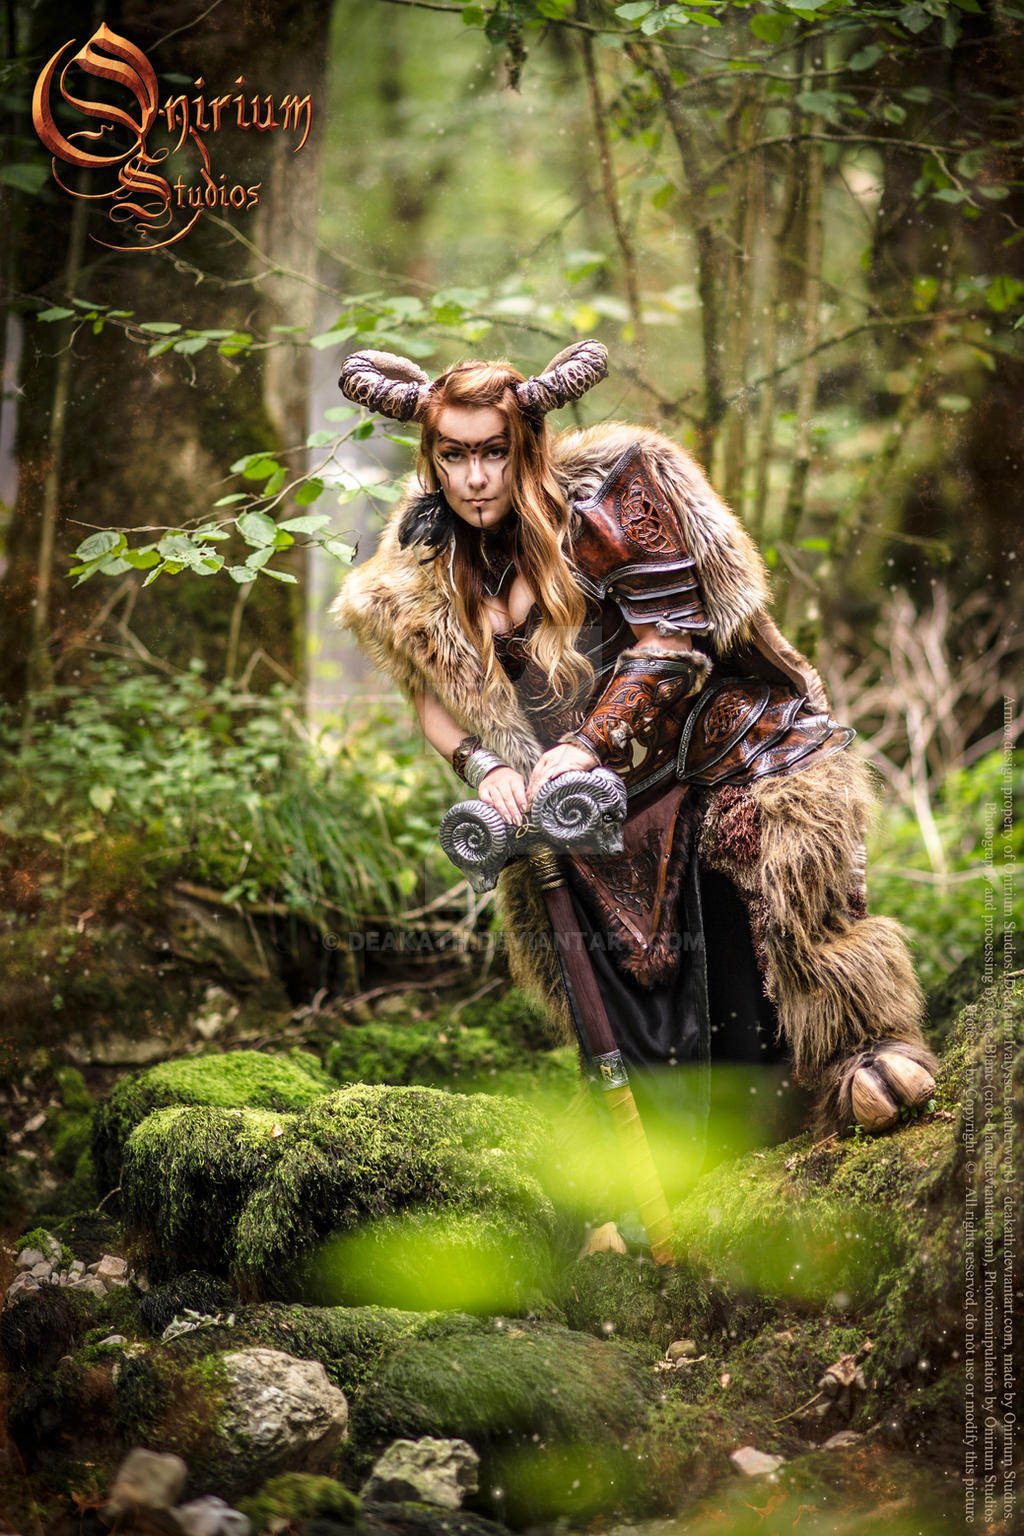 Photoshoot 2015 : Celtic battle faun 4 by Deakath